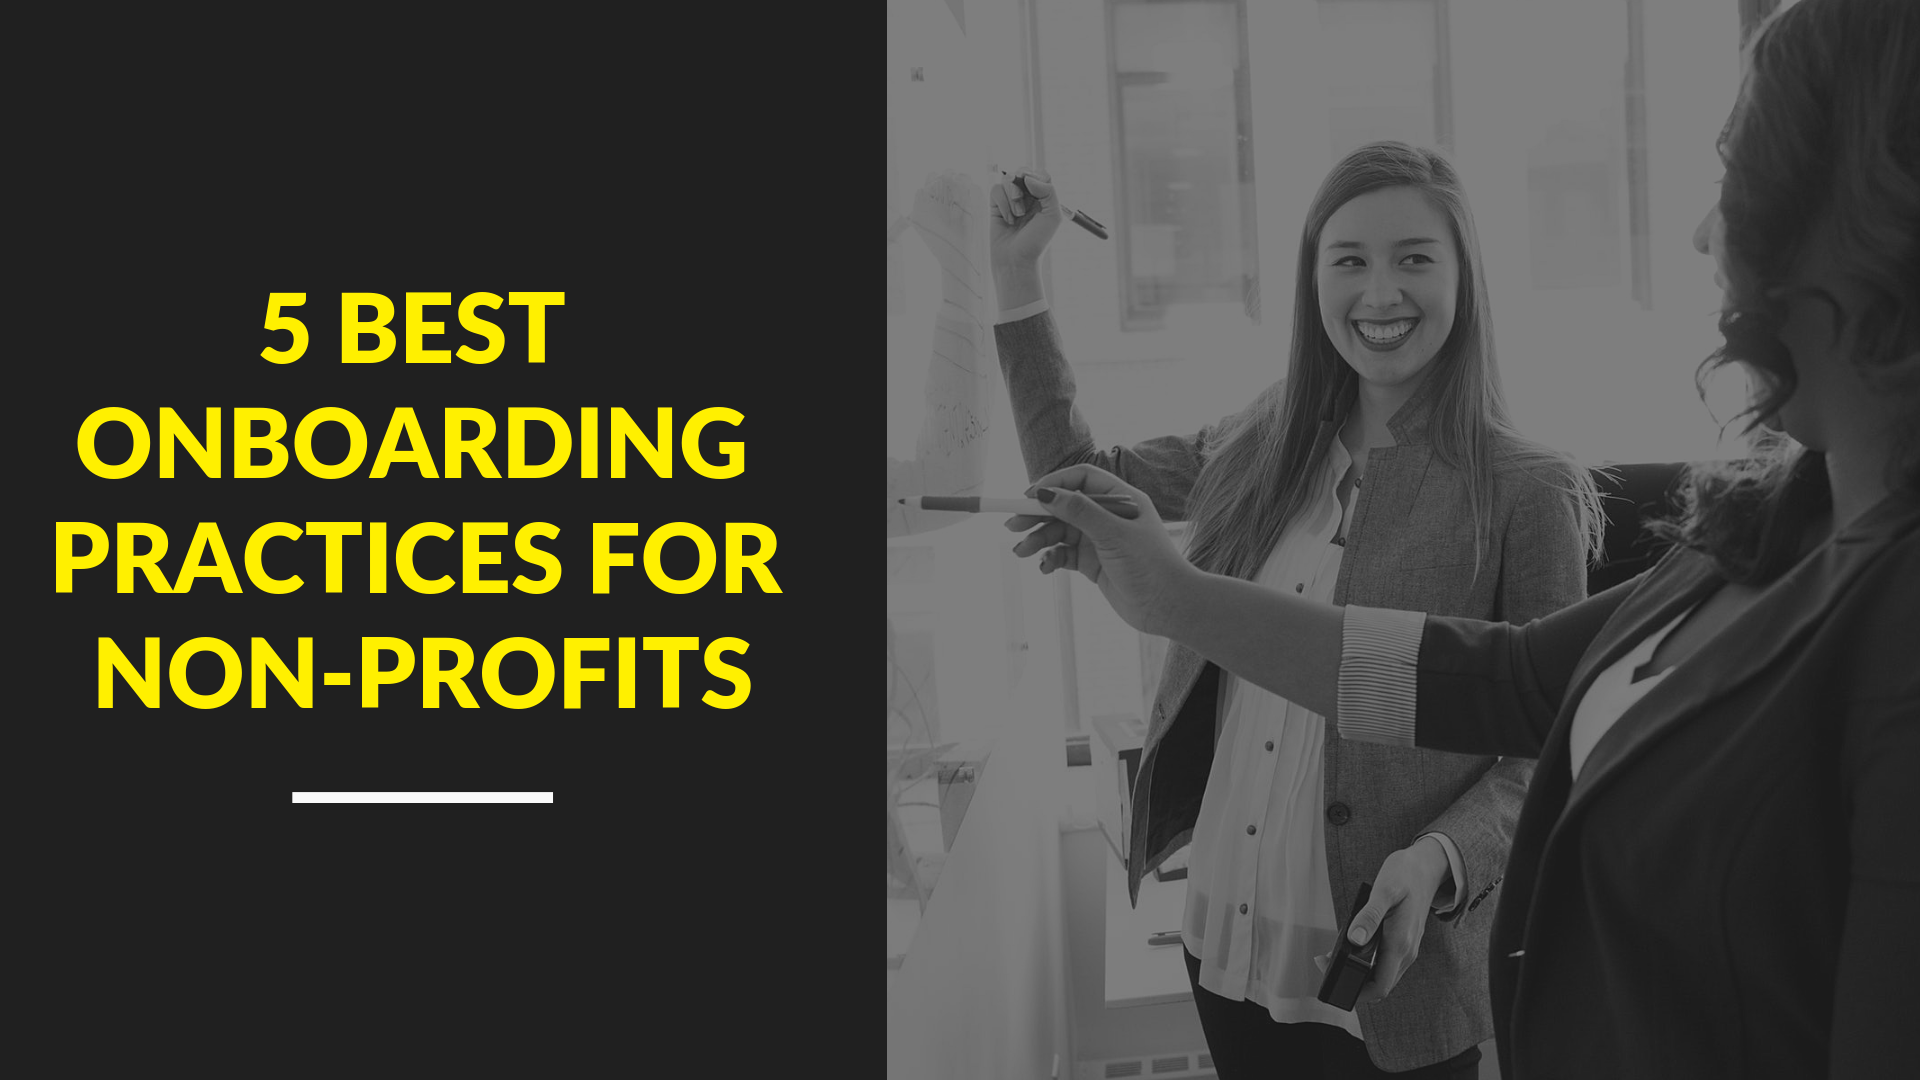 Efficient Onboarding is essential to convert new hires into loyal employees.